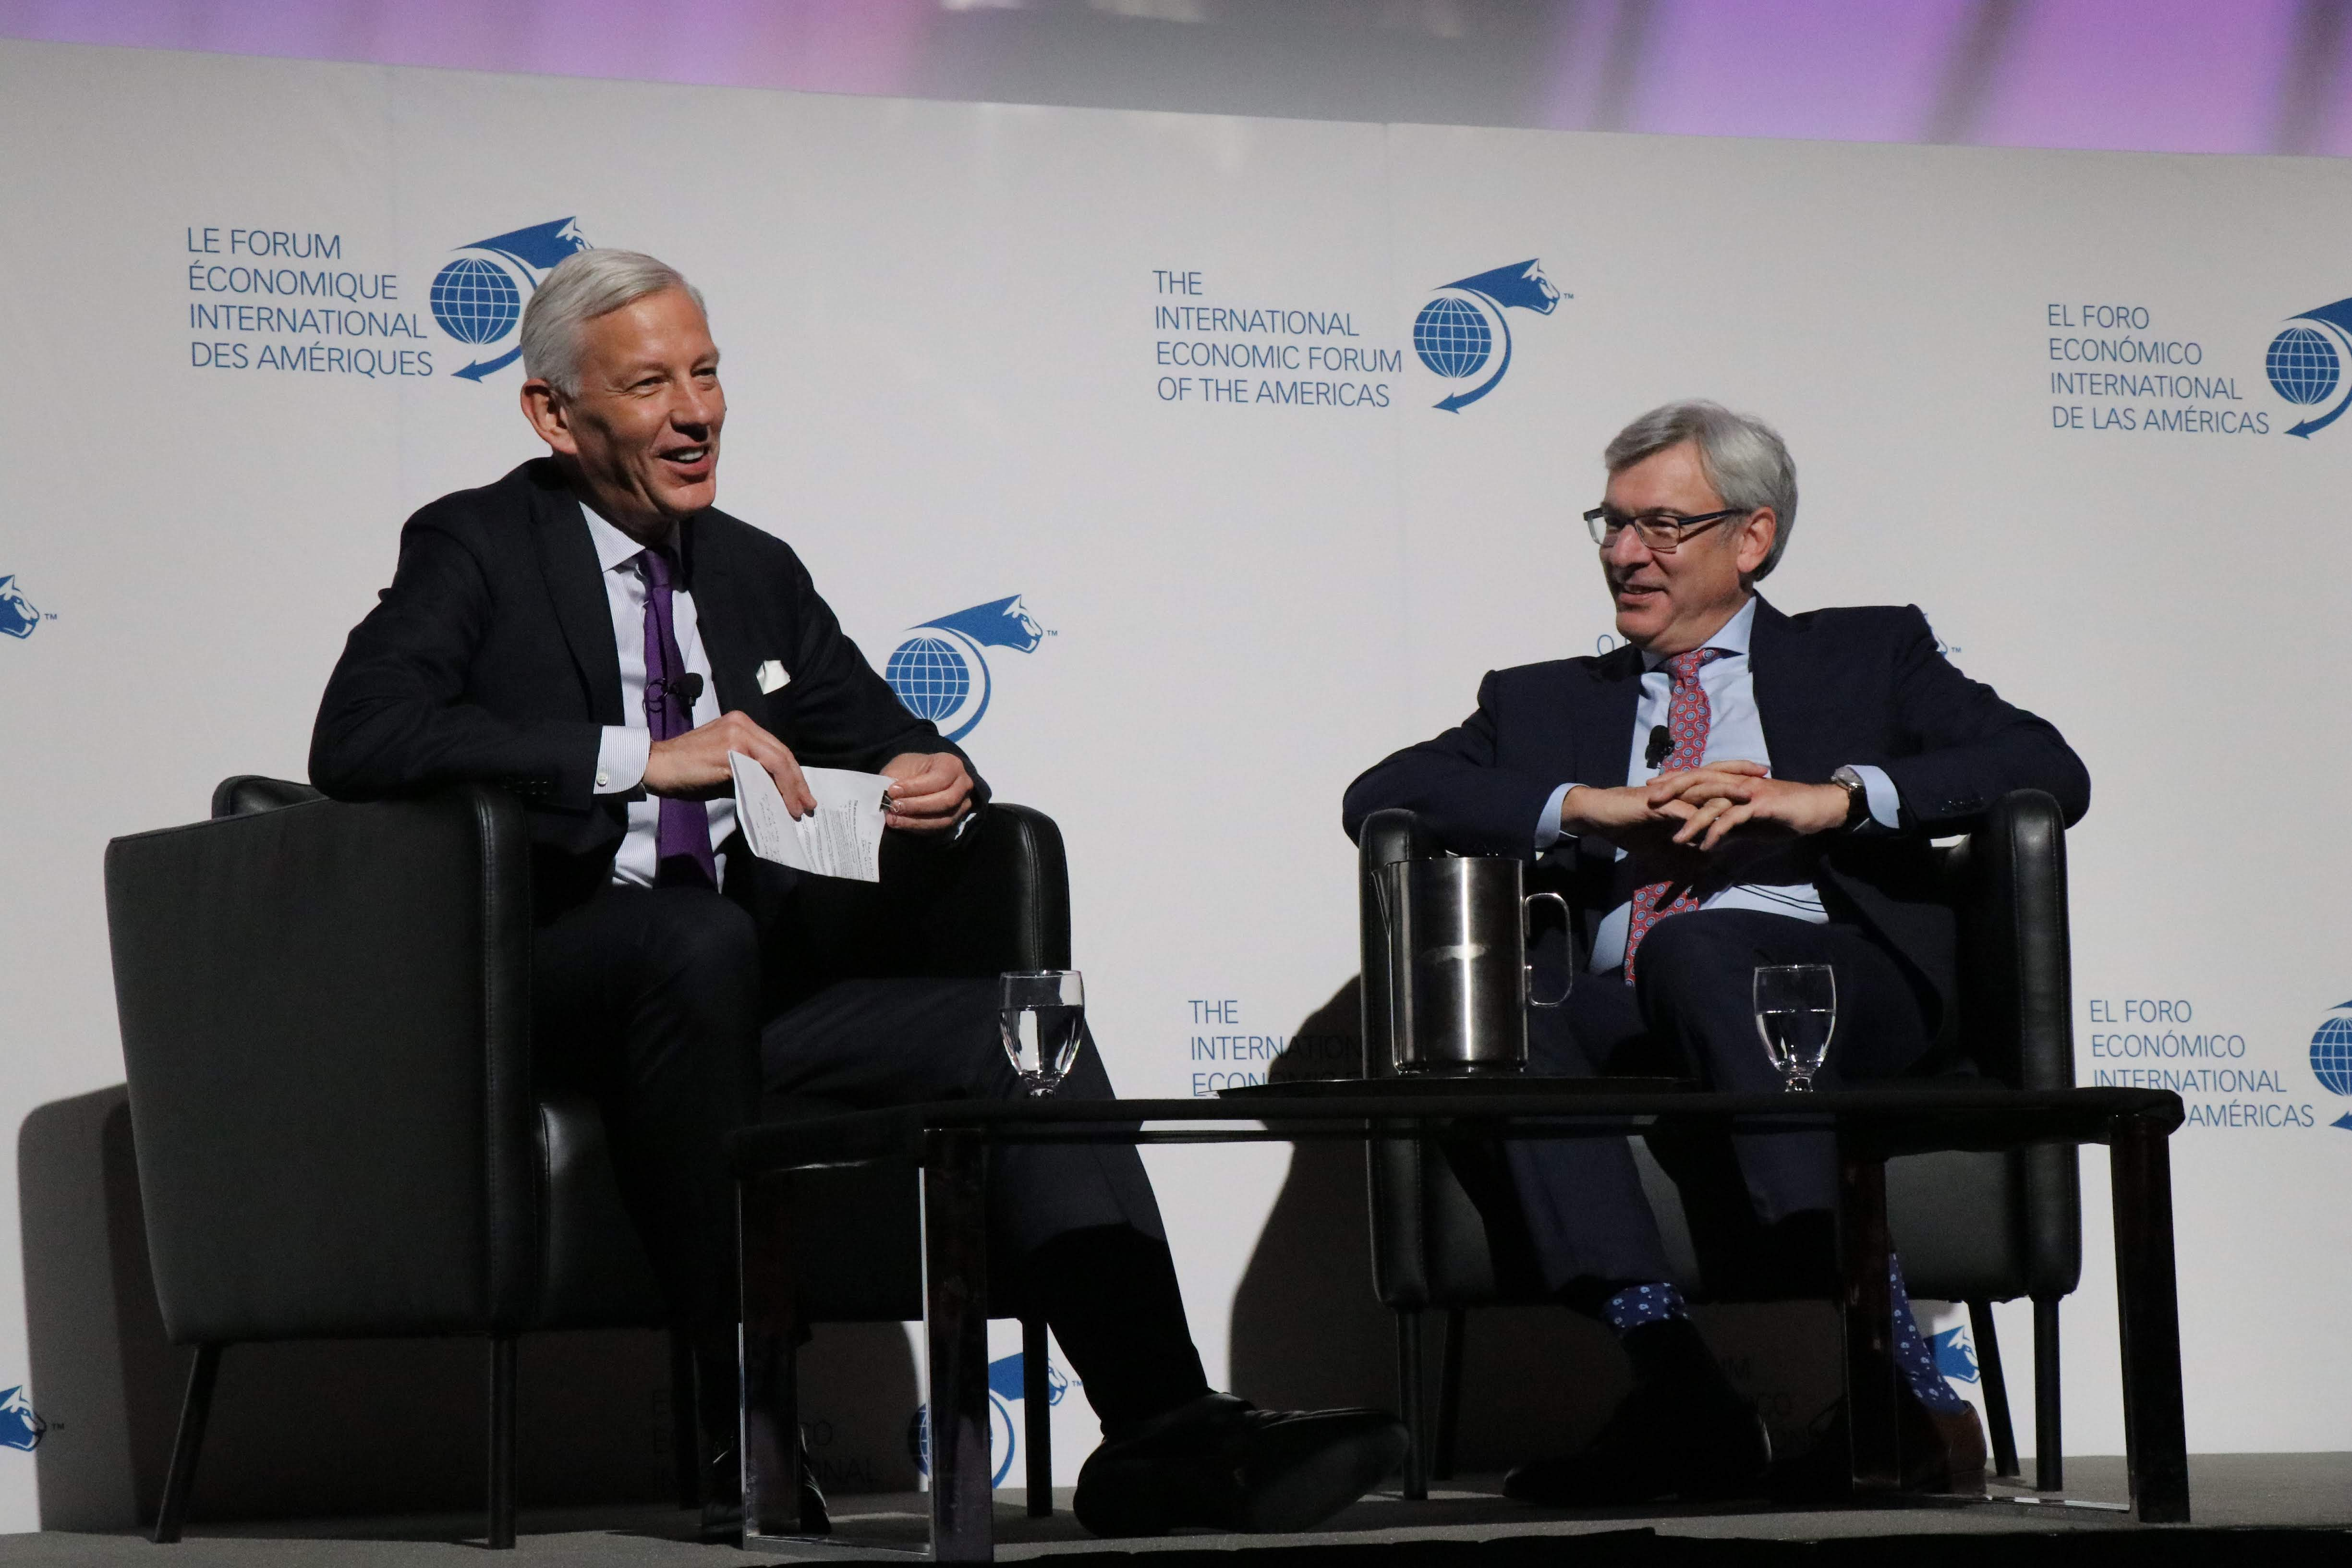 Luncheon - David McKay, President and Chief Executive Officer, RBC interviewed by Dominic Barton, Global Managing Partner Emeritus, McKinsey & Company